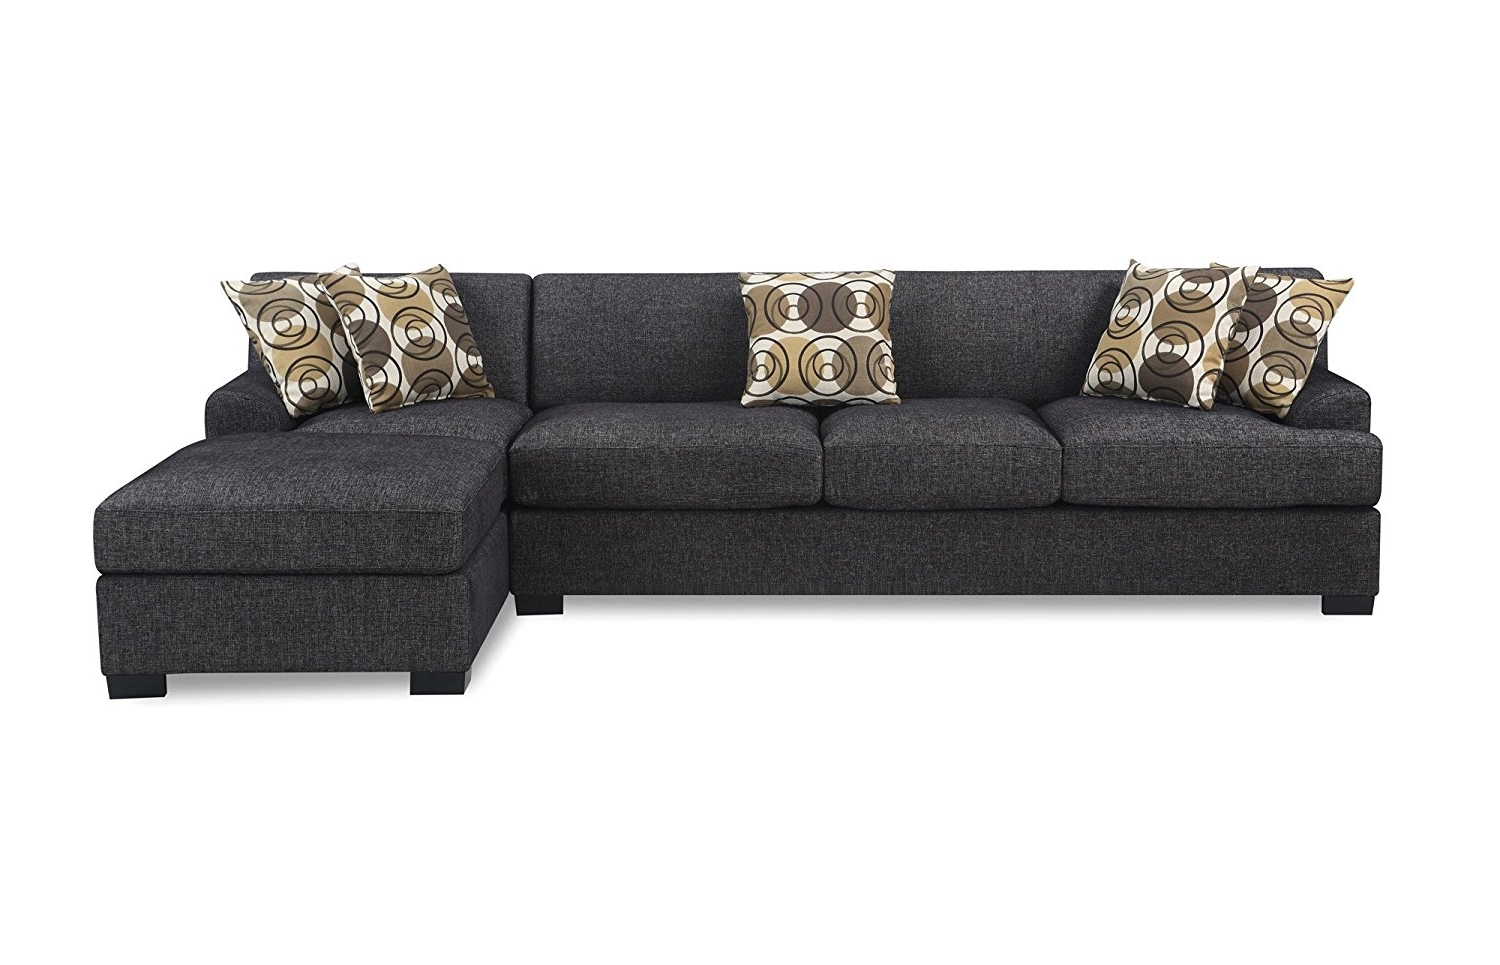 Latest Amazon: Bobkona Poundex Benford Collection Faux Linen Chaise For Sectional Sofas At Amazon (View 6 of 15)